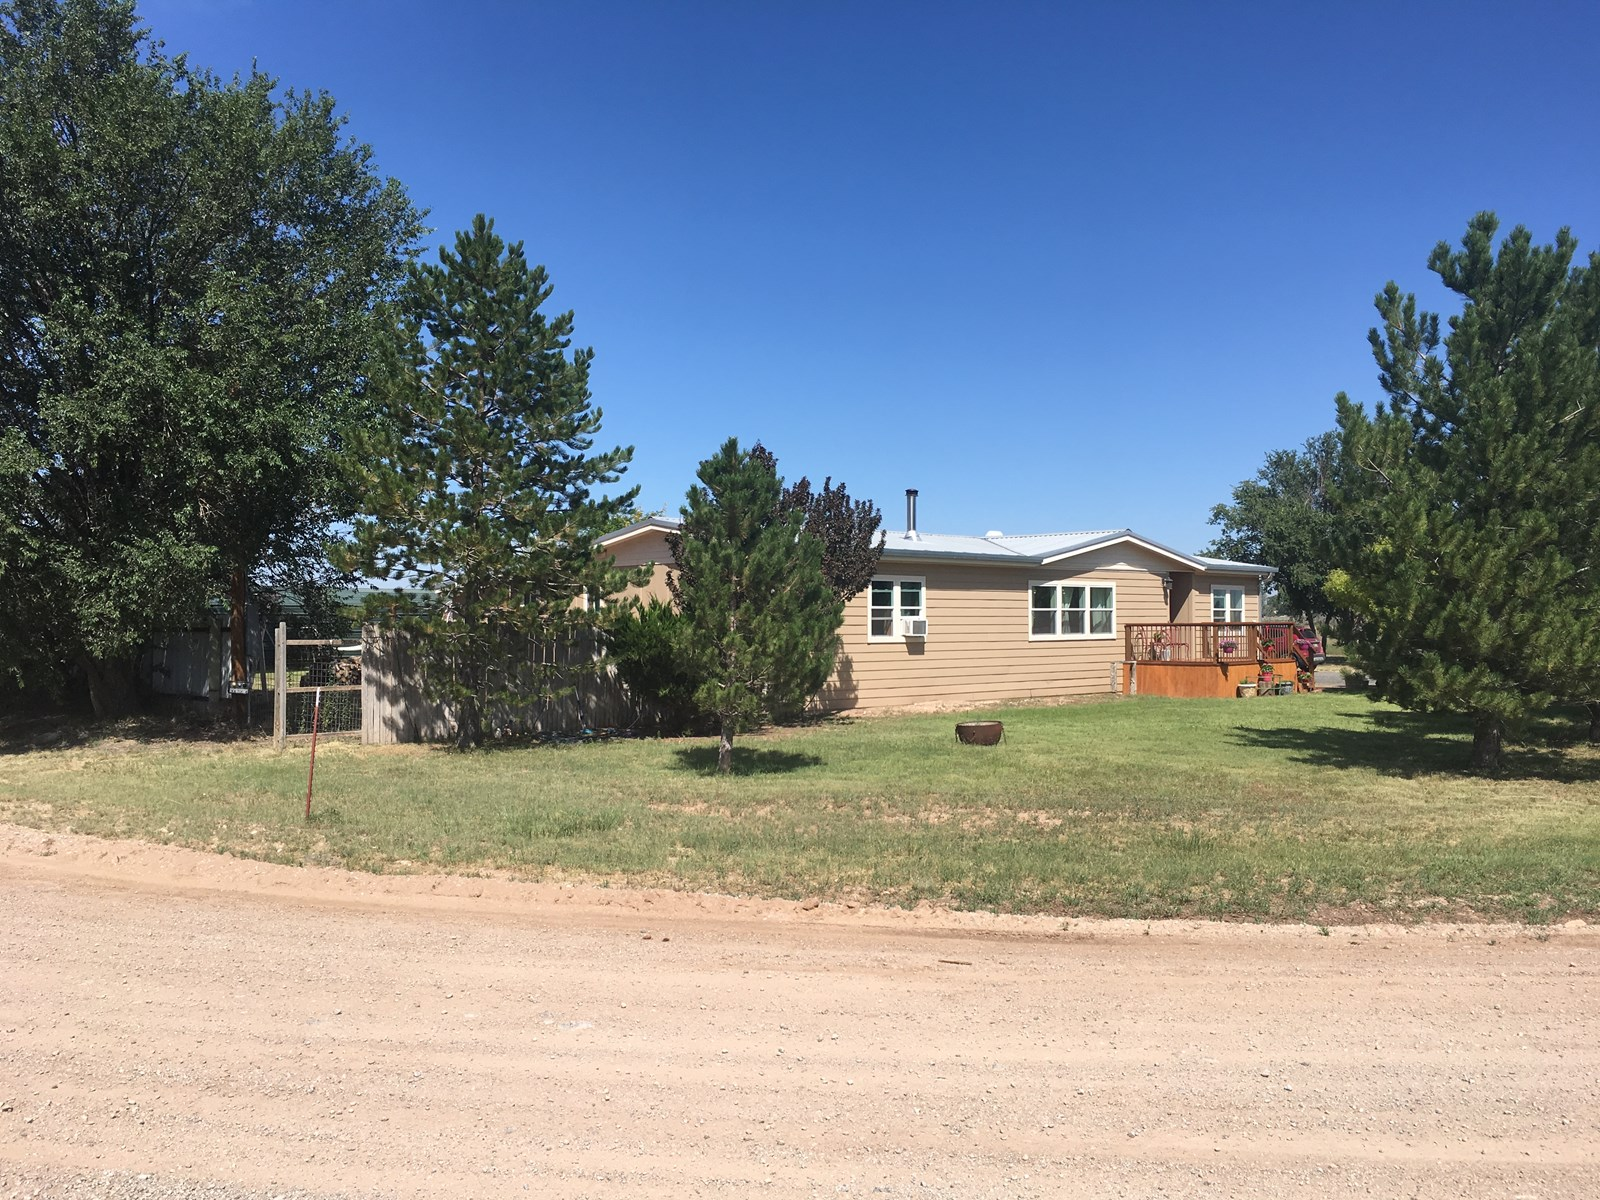 Country Home For Sale on Acreage in Central NM By Estancia